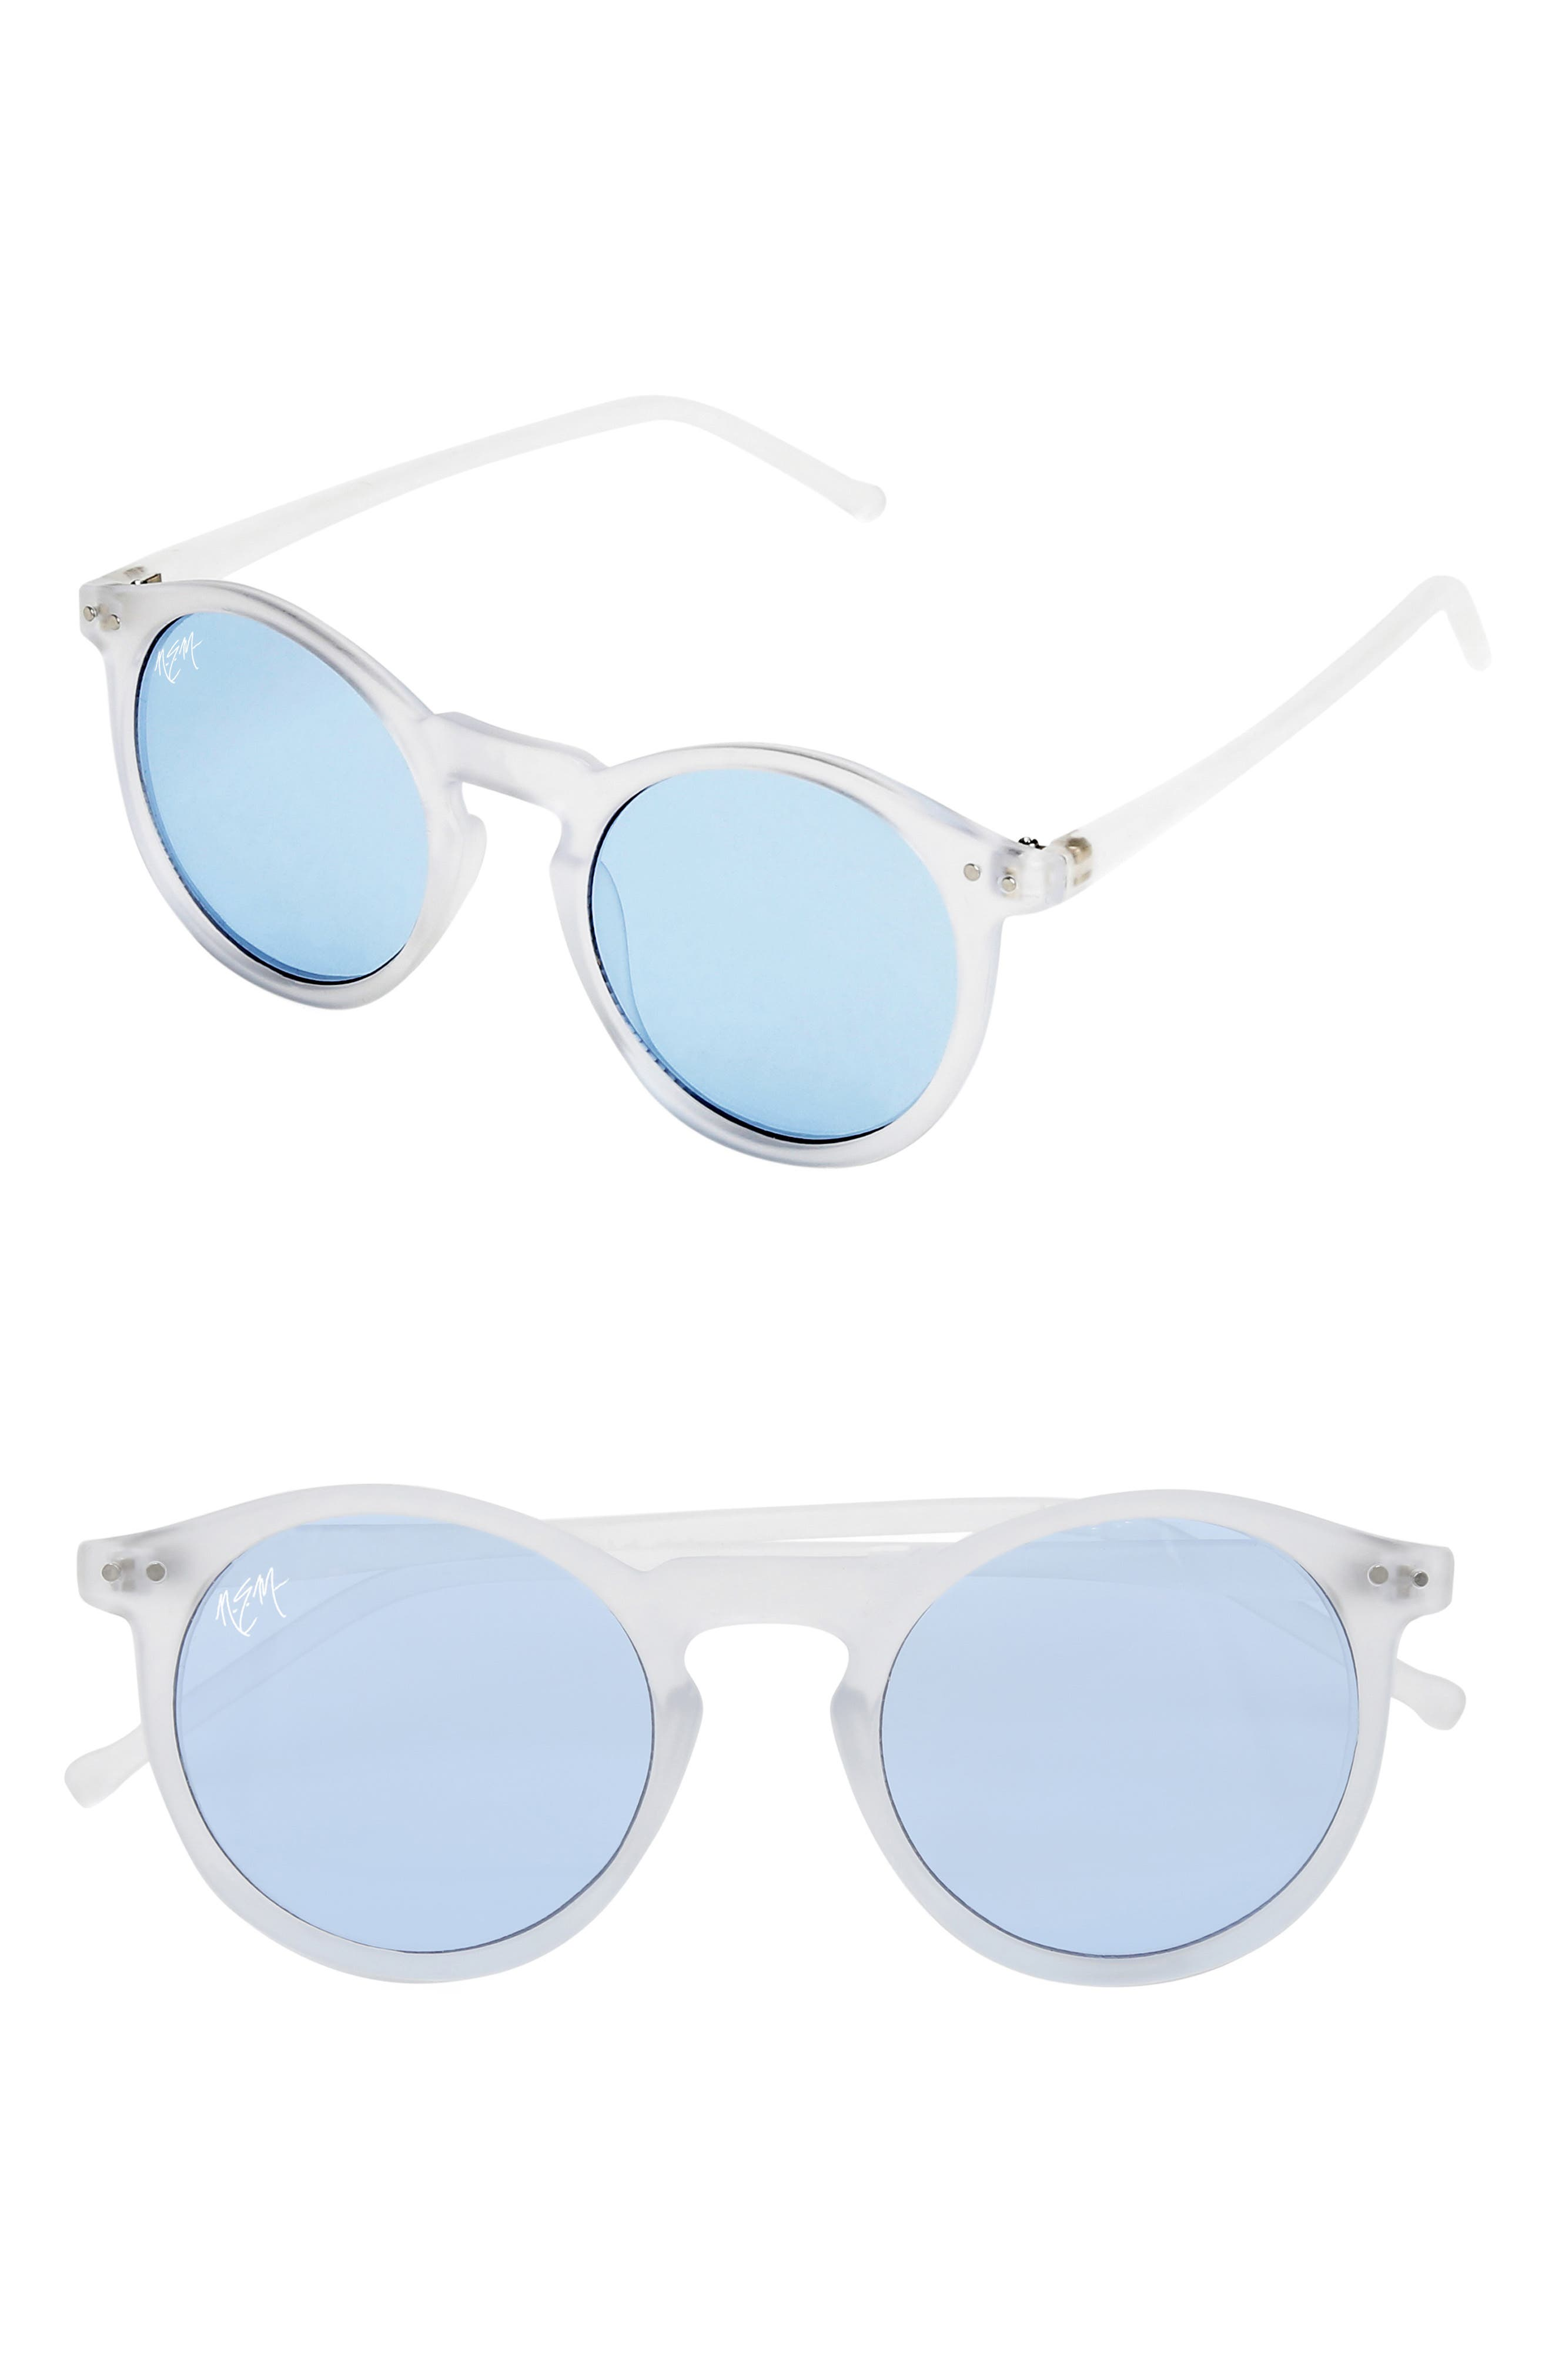 50mm Mirrored Round Sunglasses,                             Main thumbnail 1, color,                             CLEAR SKY BLUE/ BLUE TINT